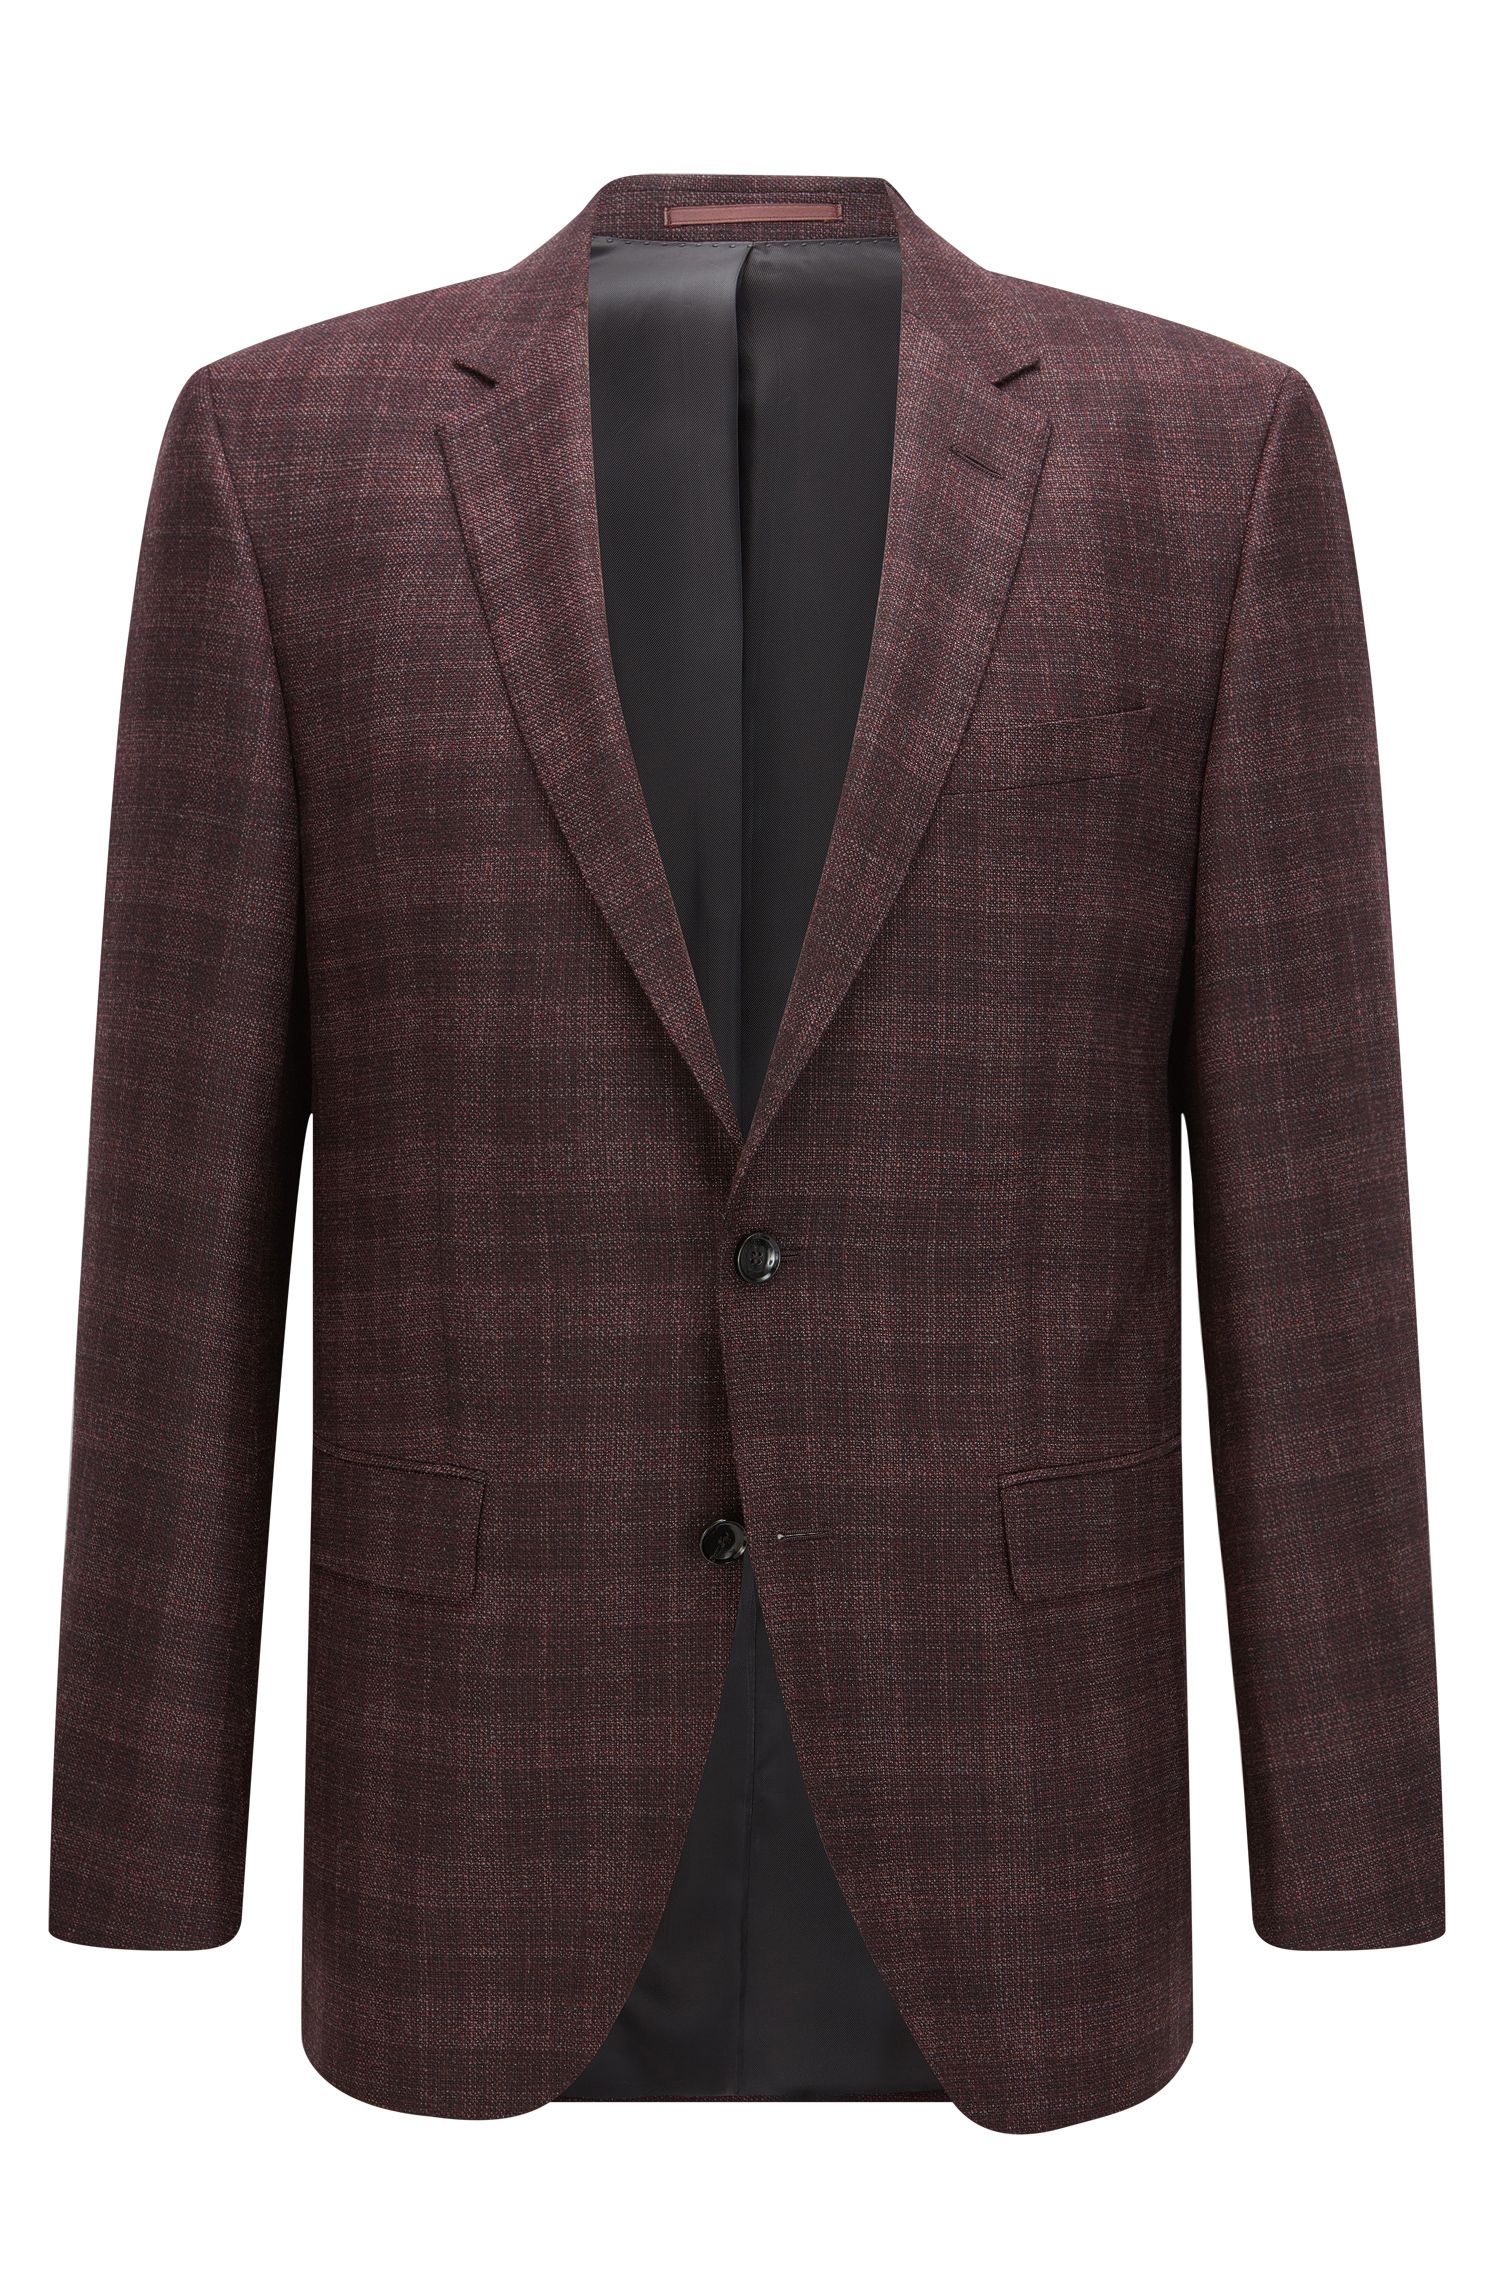 Plaid Italian Virgin Wool Silk Jacket, Slim Fit | T-Heel